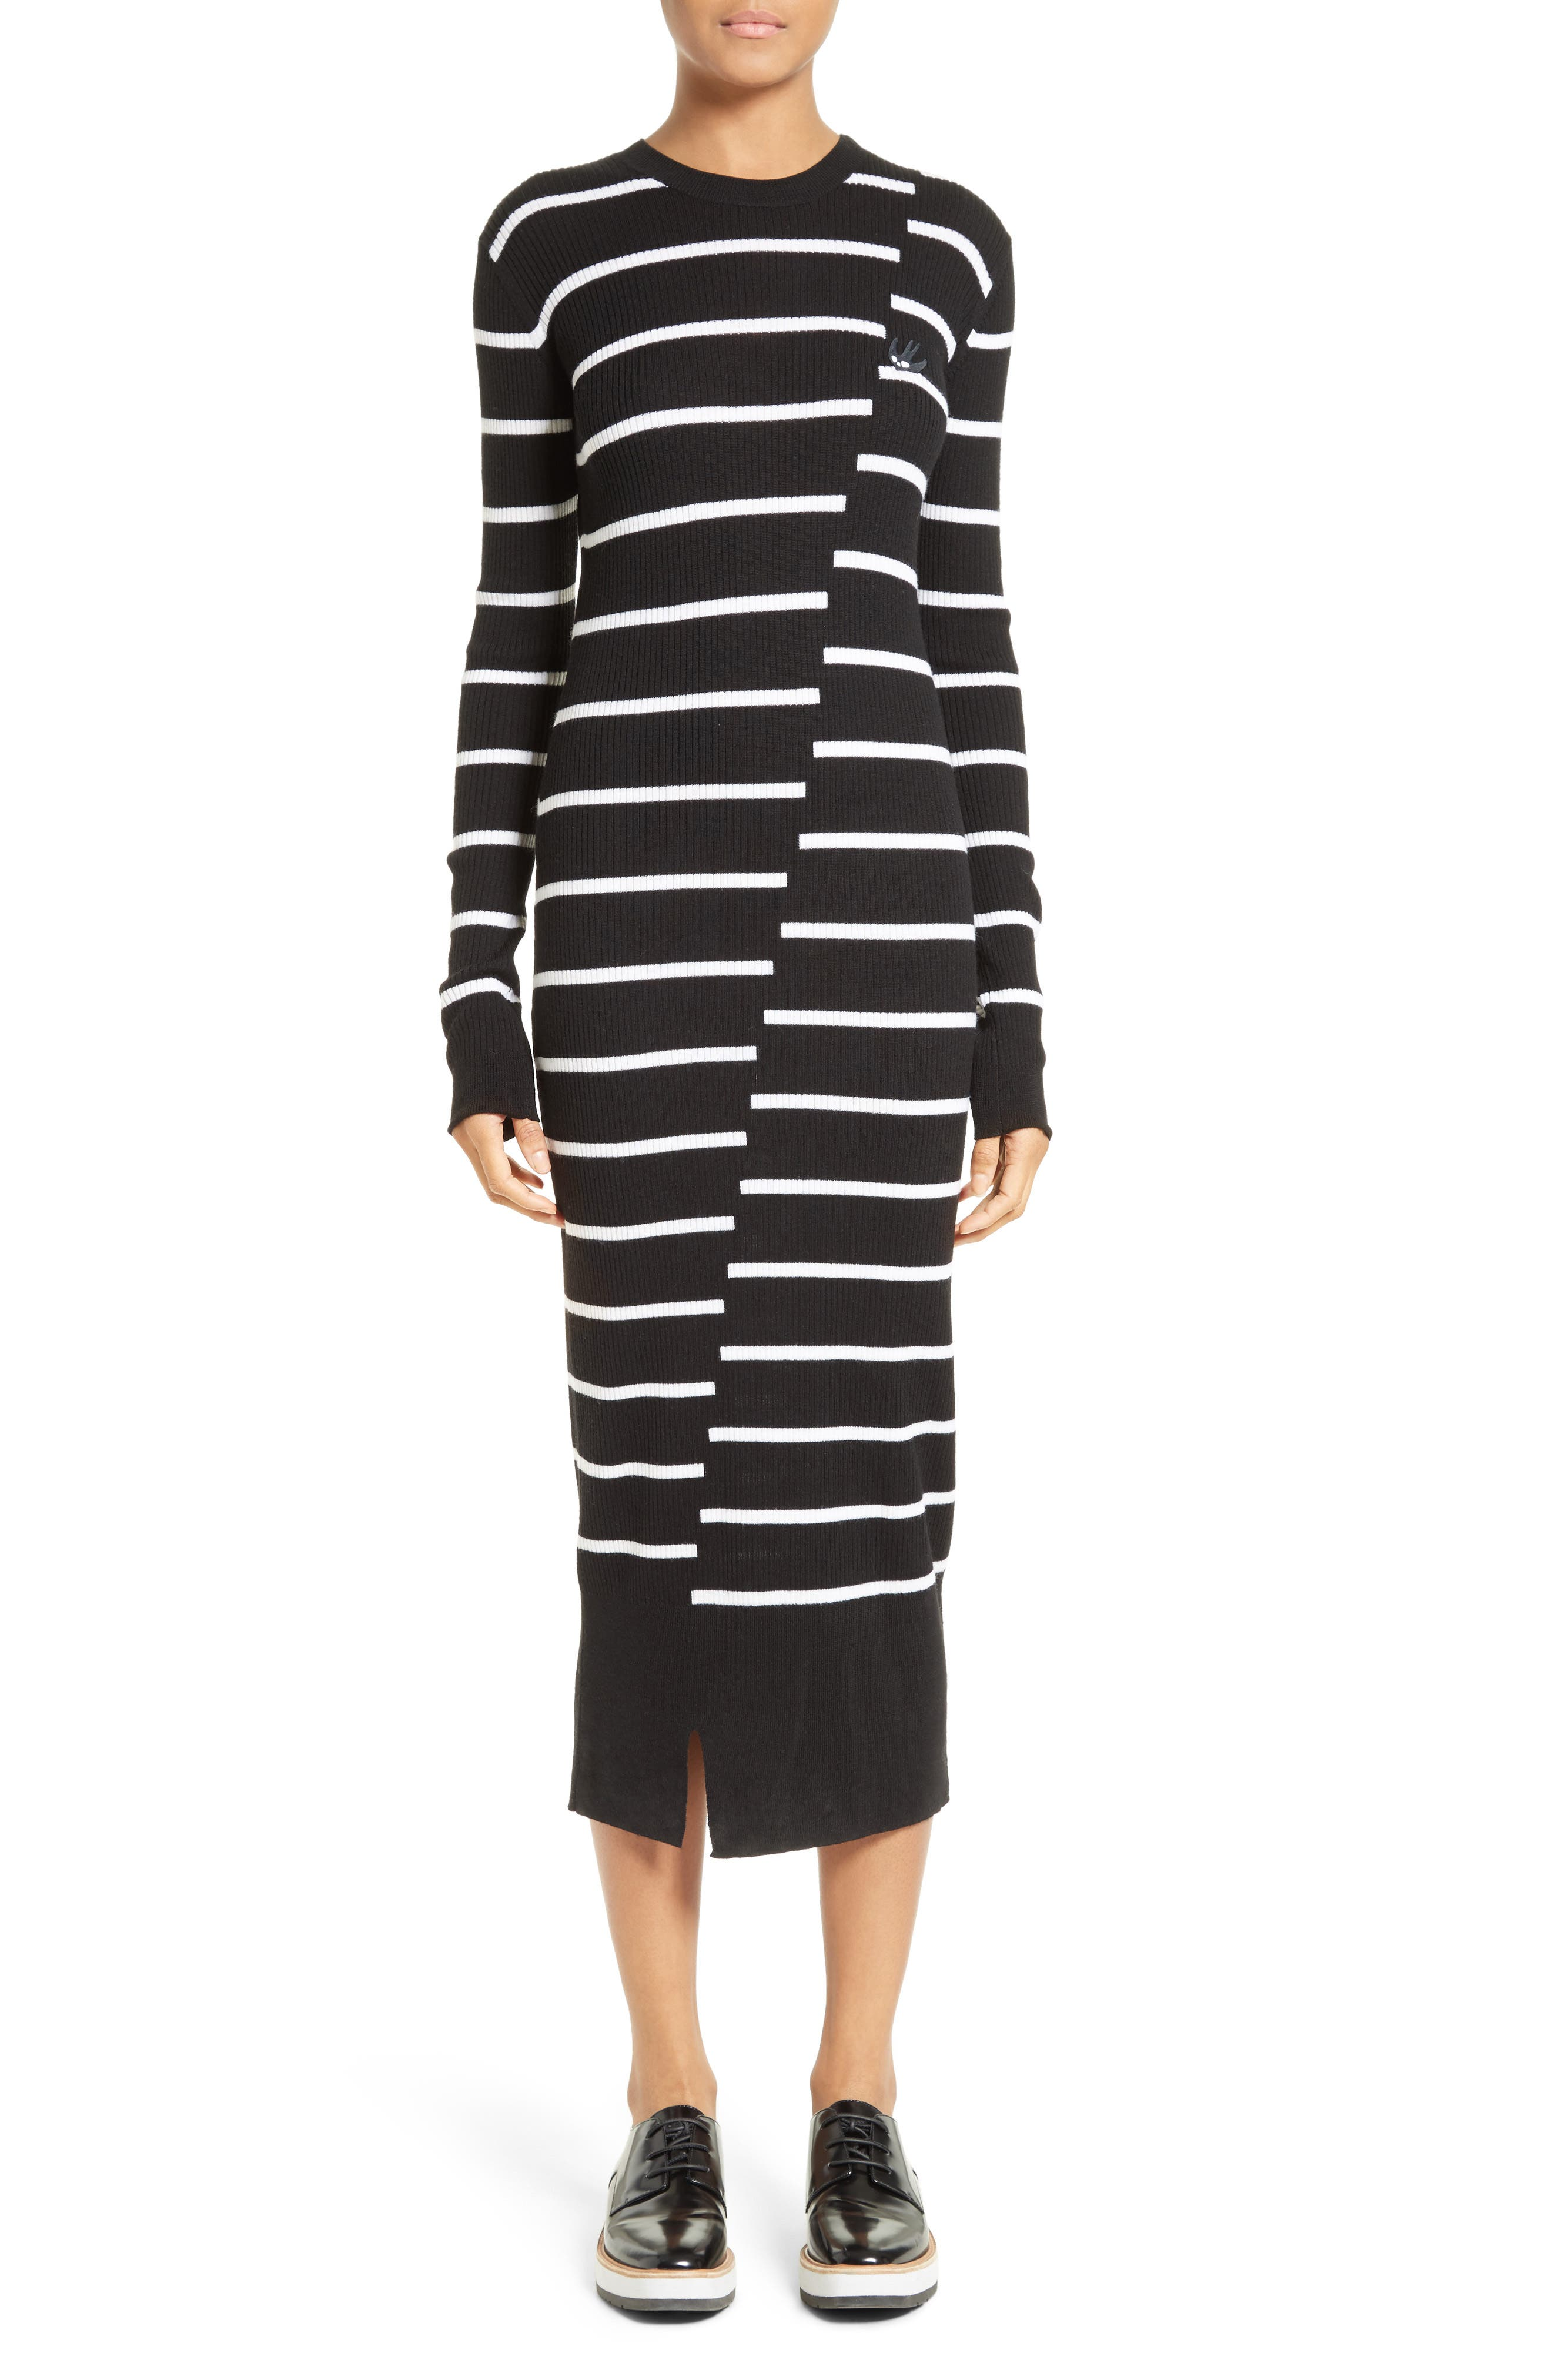 Distort Stripe Wool Sweater Dress,                         Main,                         color, Black/ White